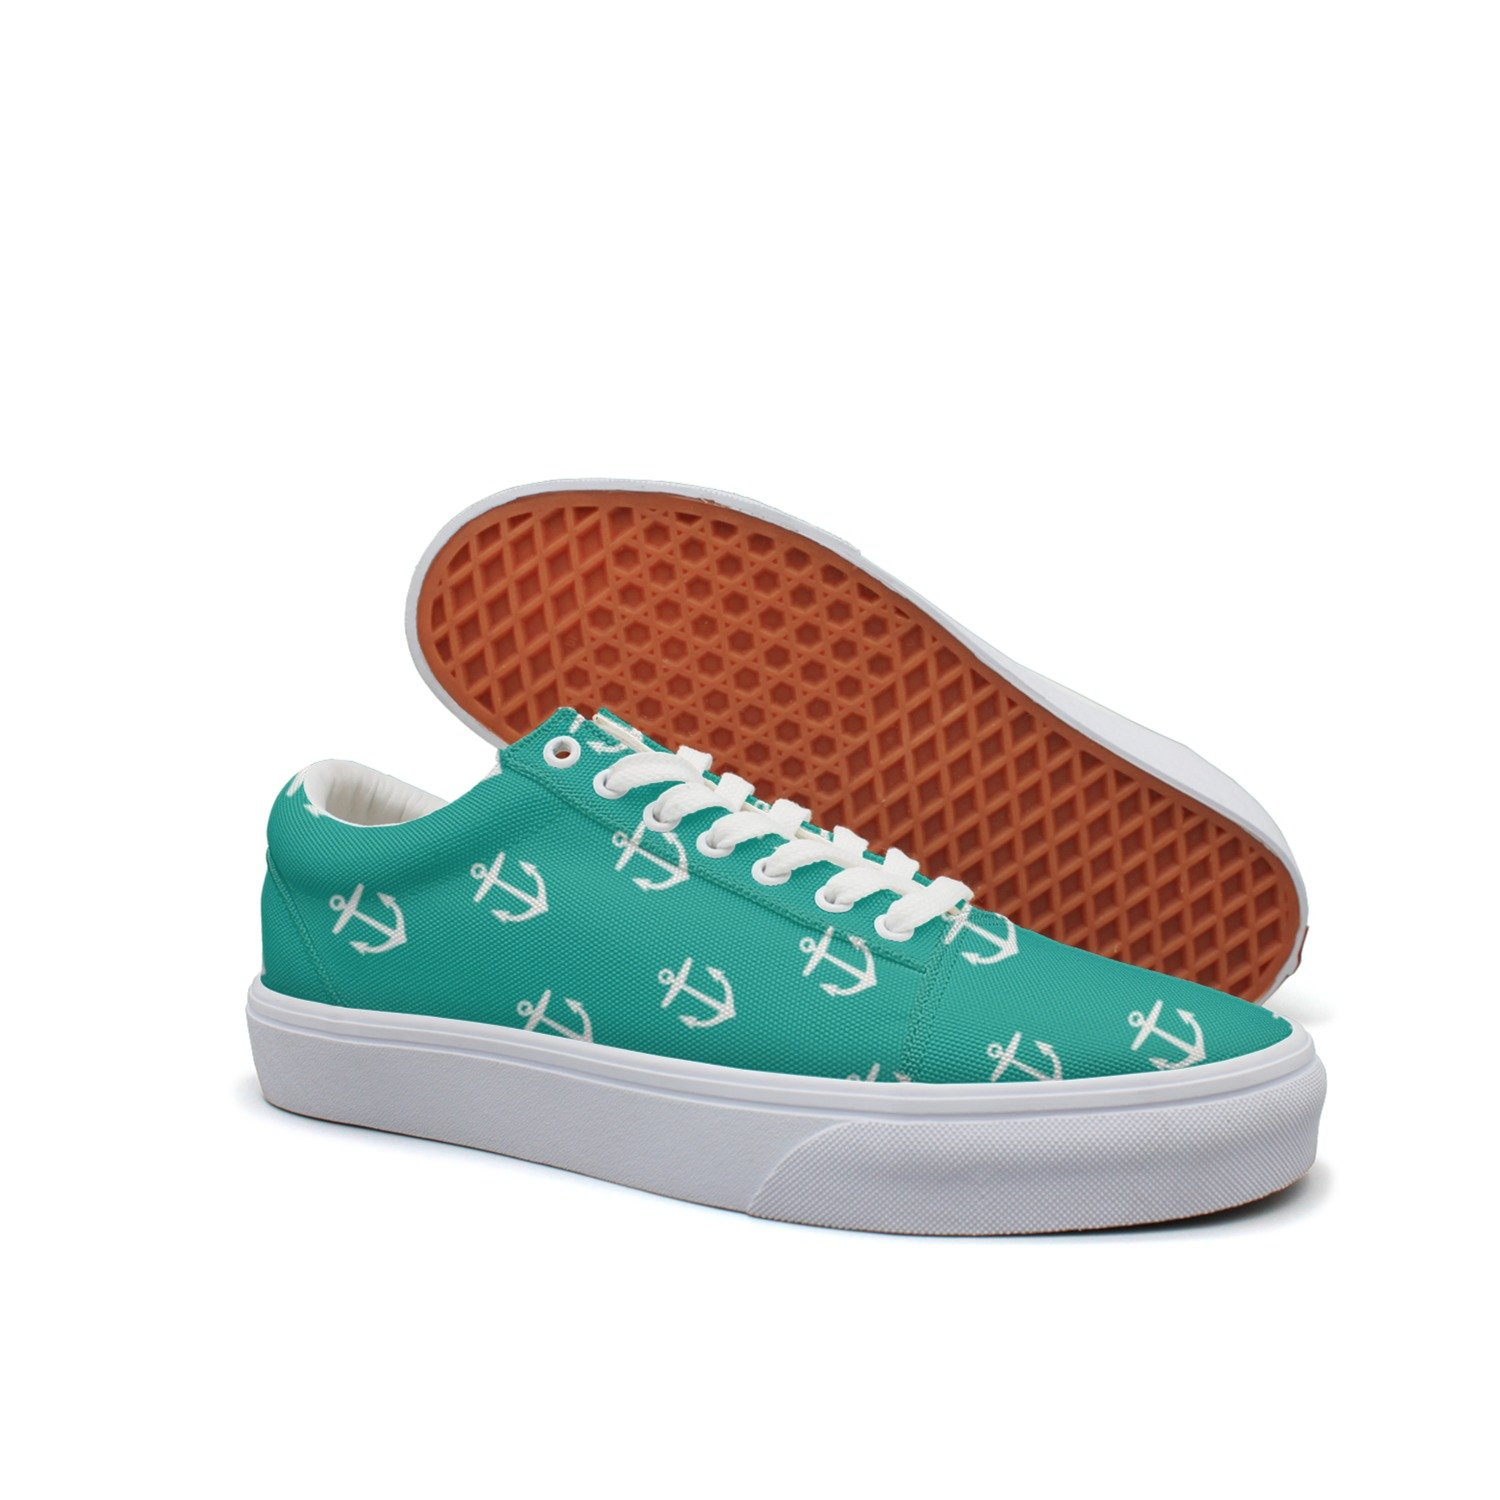 VCERTHDF Print Trendy Anchors Repeated Low Top Canvas Sneakers